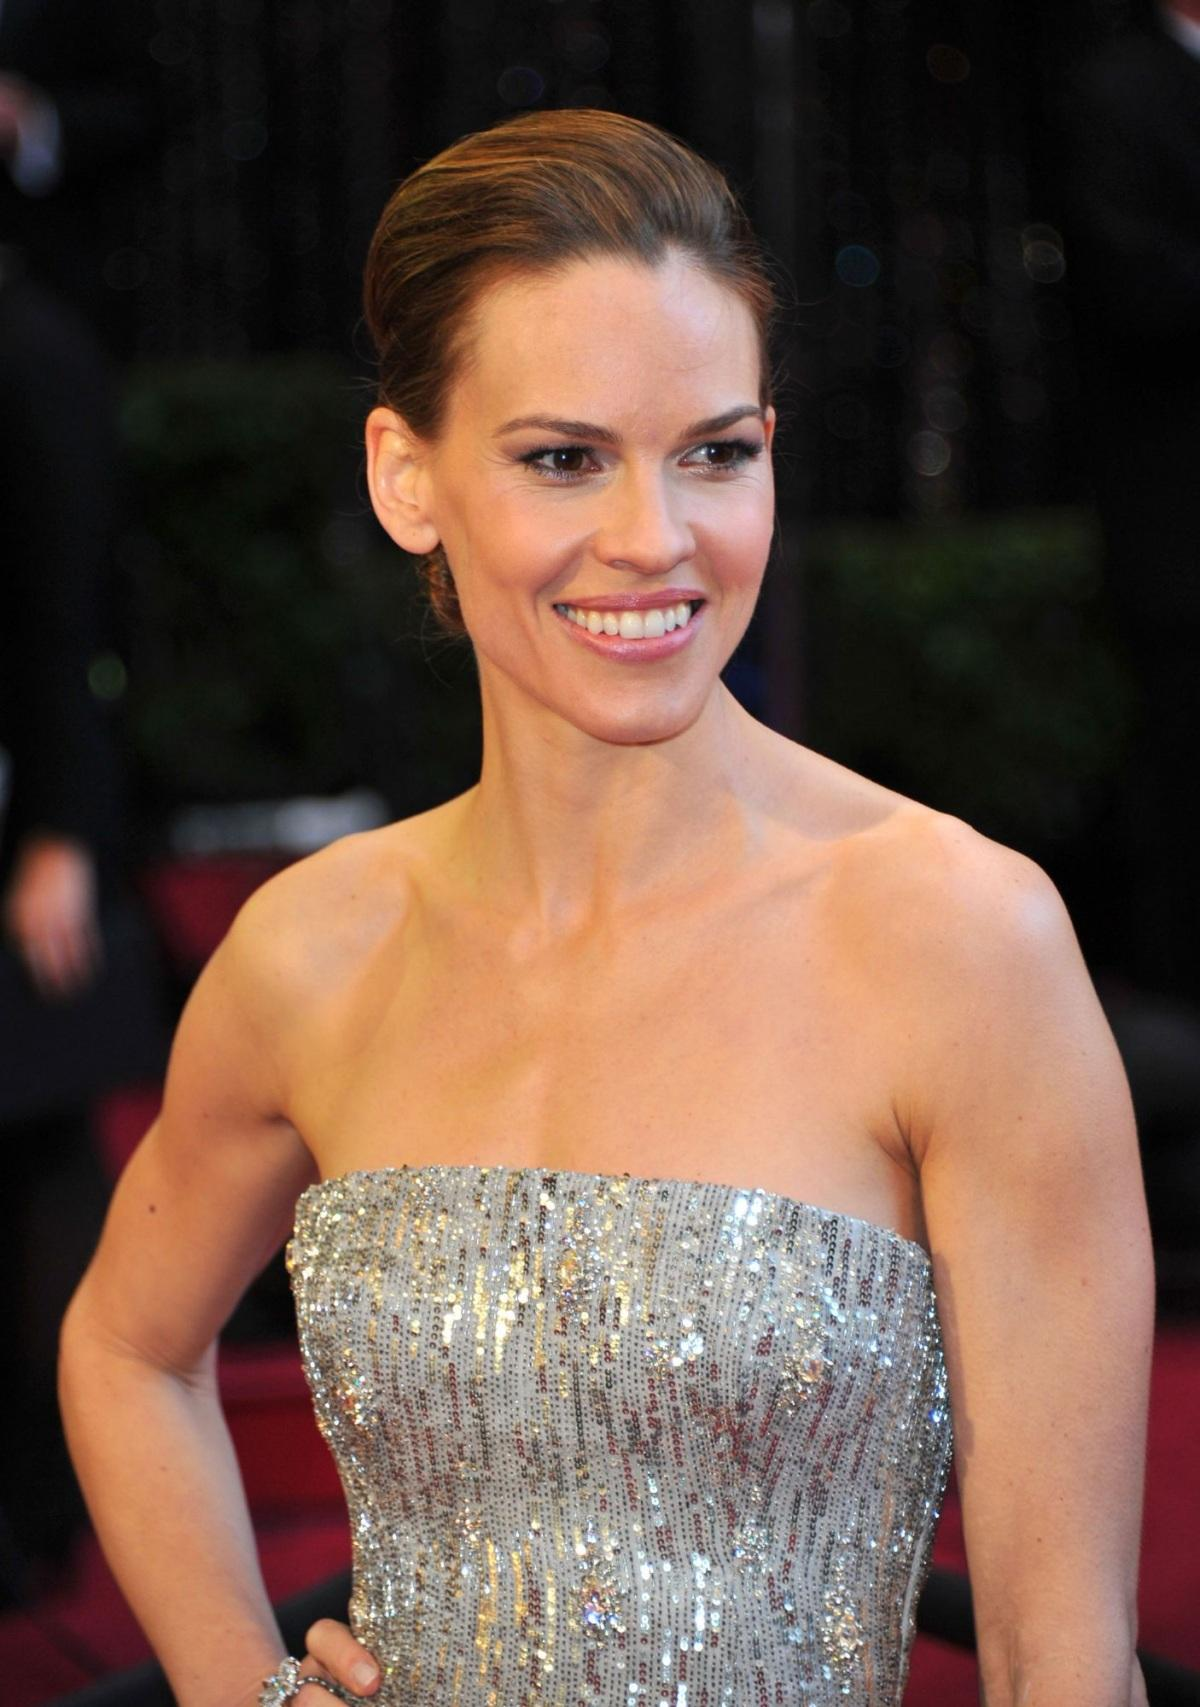 Hilary Swank Workout R...